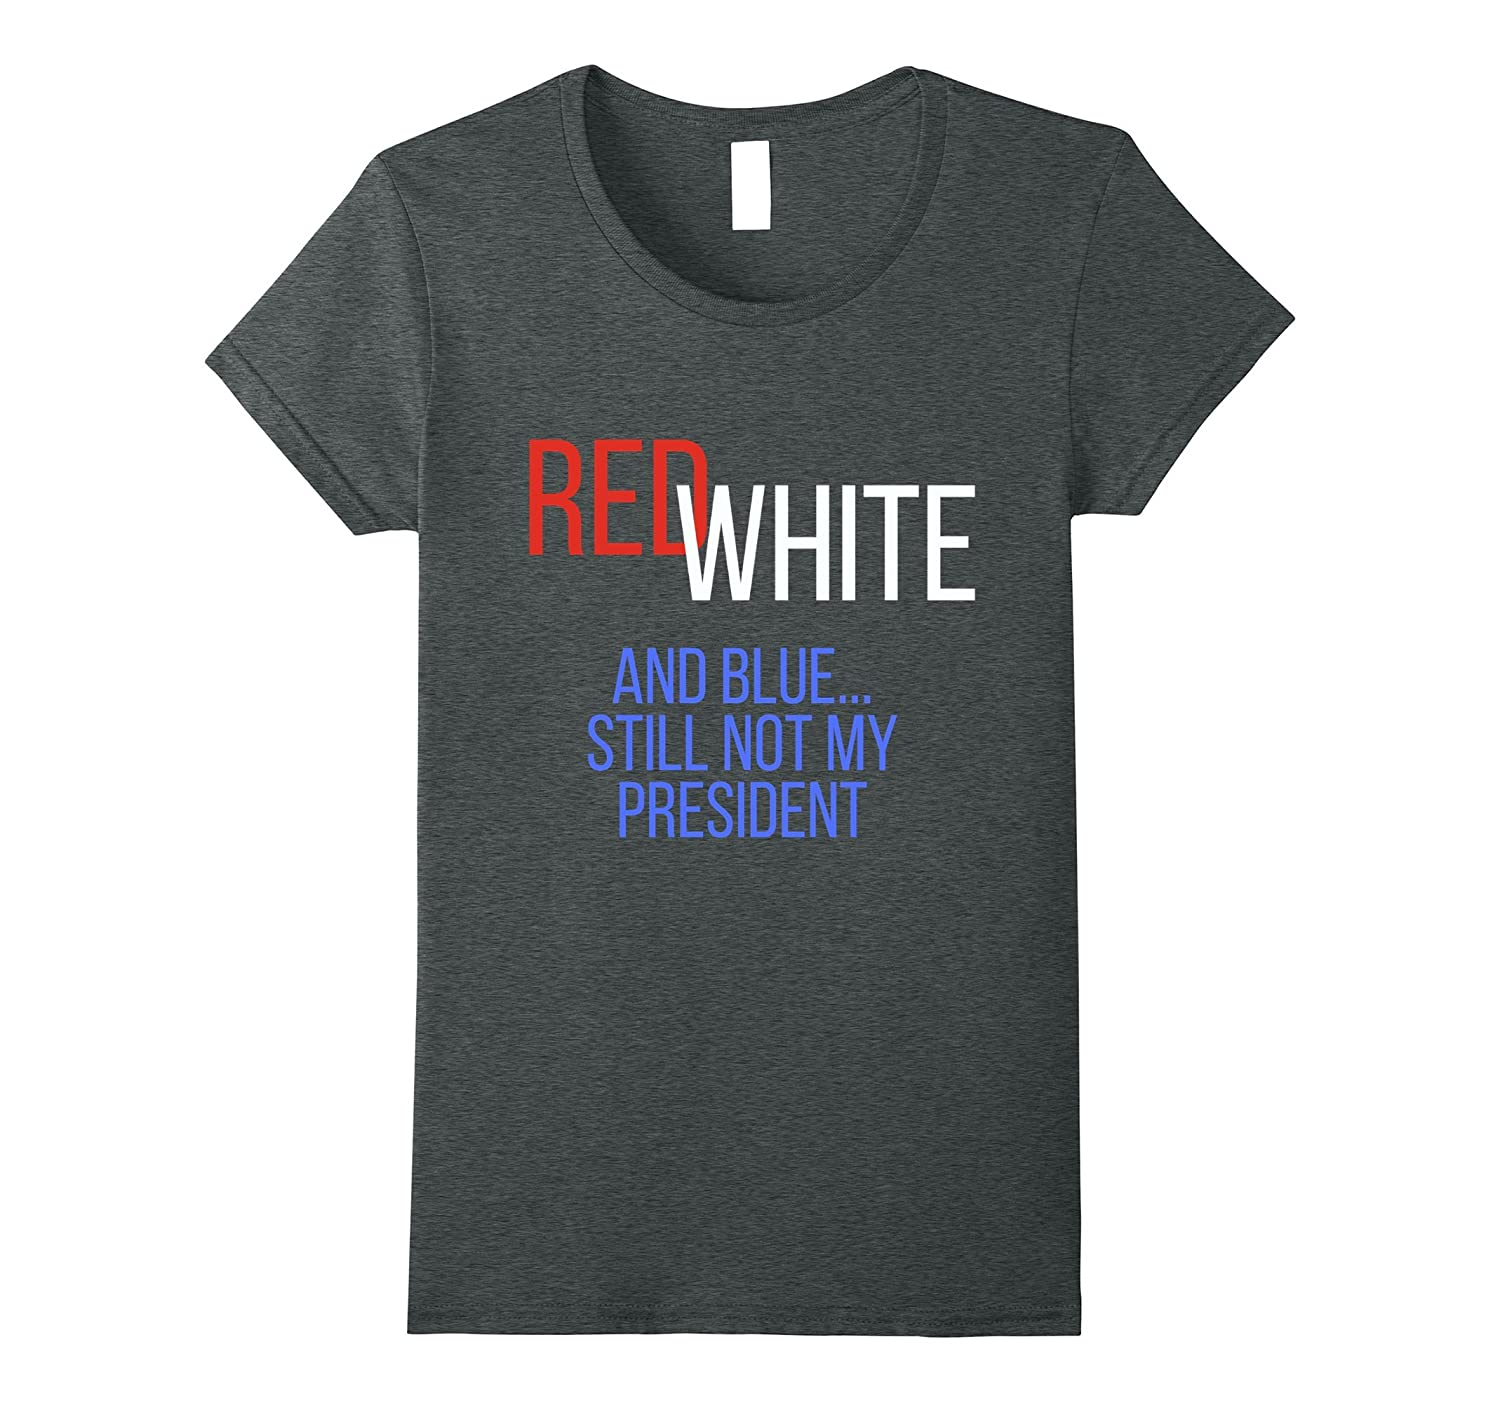 4th of July Red White and Blue Anti Trump Shirt